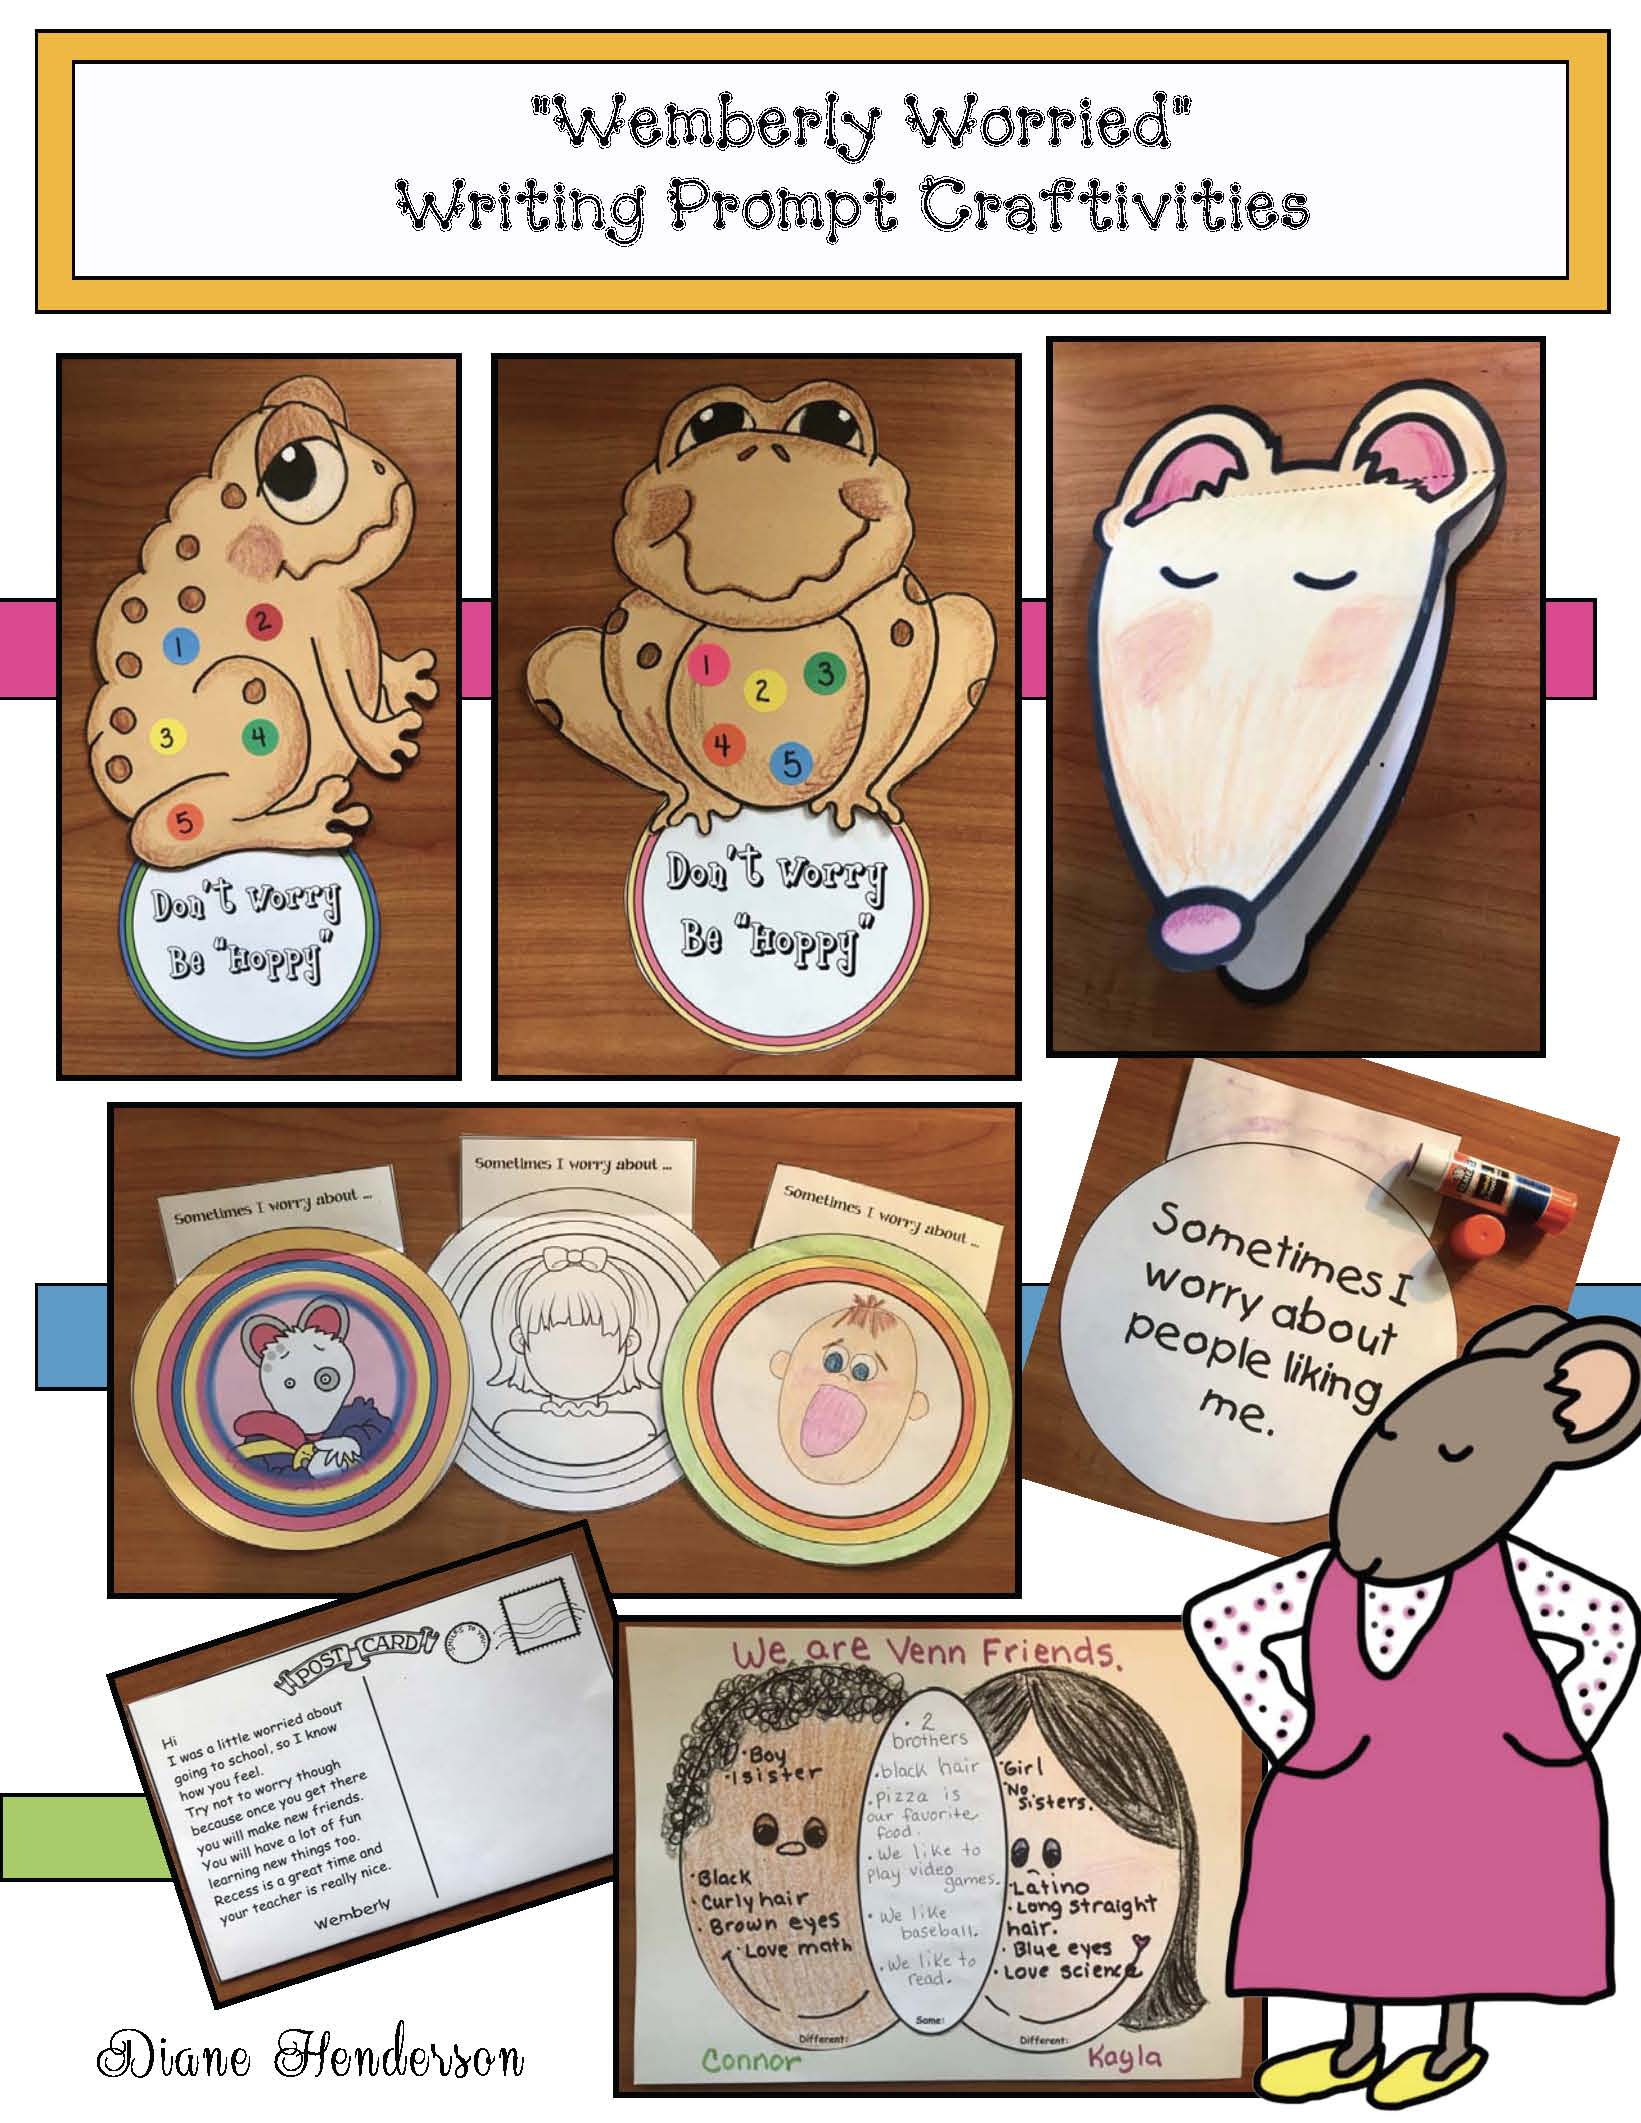 wemberly worried activities, back to school stories, back to school bulletin boards, back to school crafts, back to school writing prompts, activities for Wemberly Worried, Kevin Henkes books